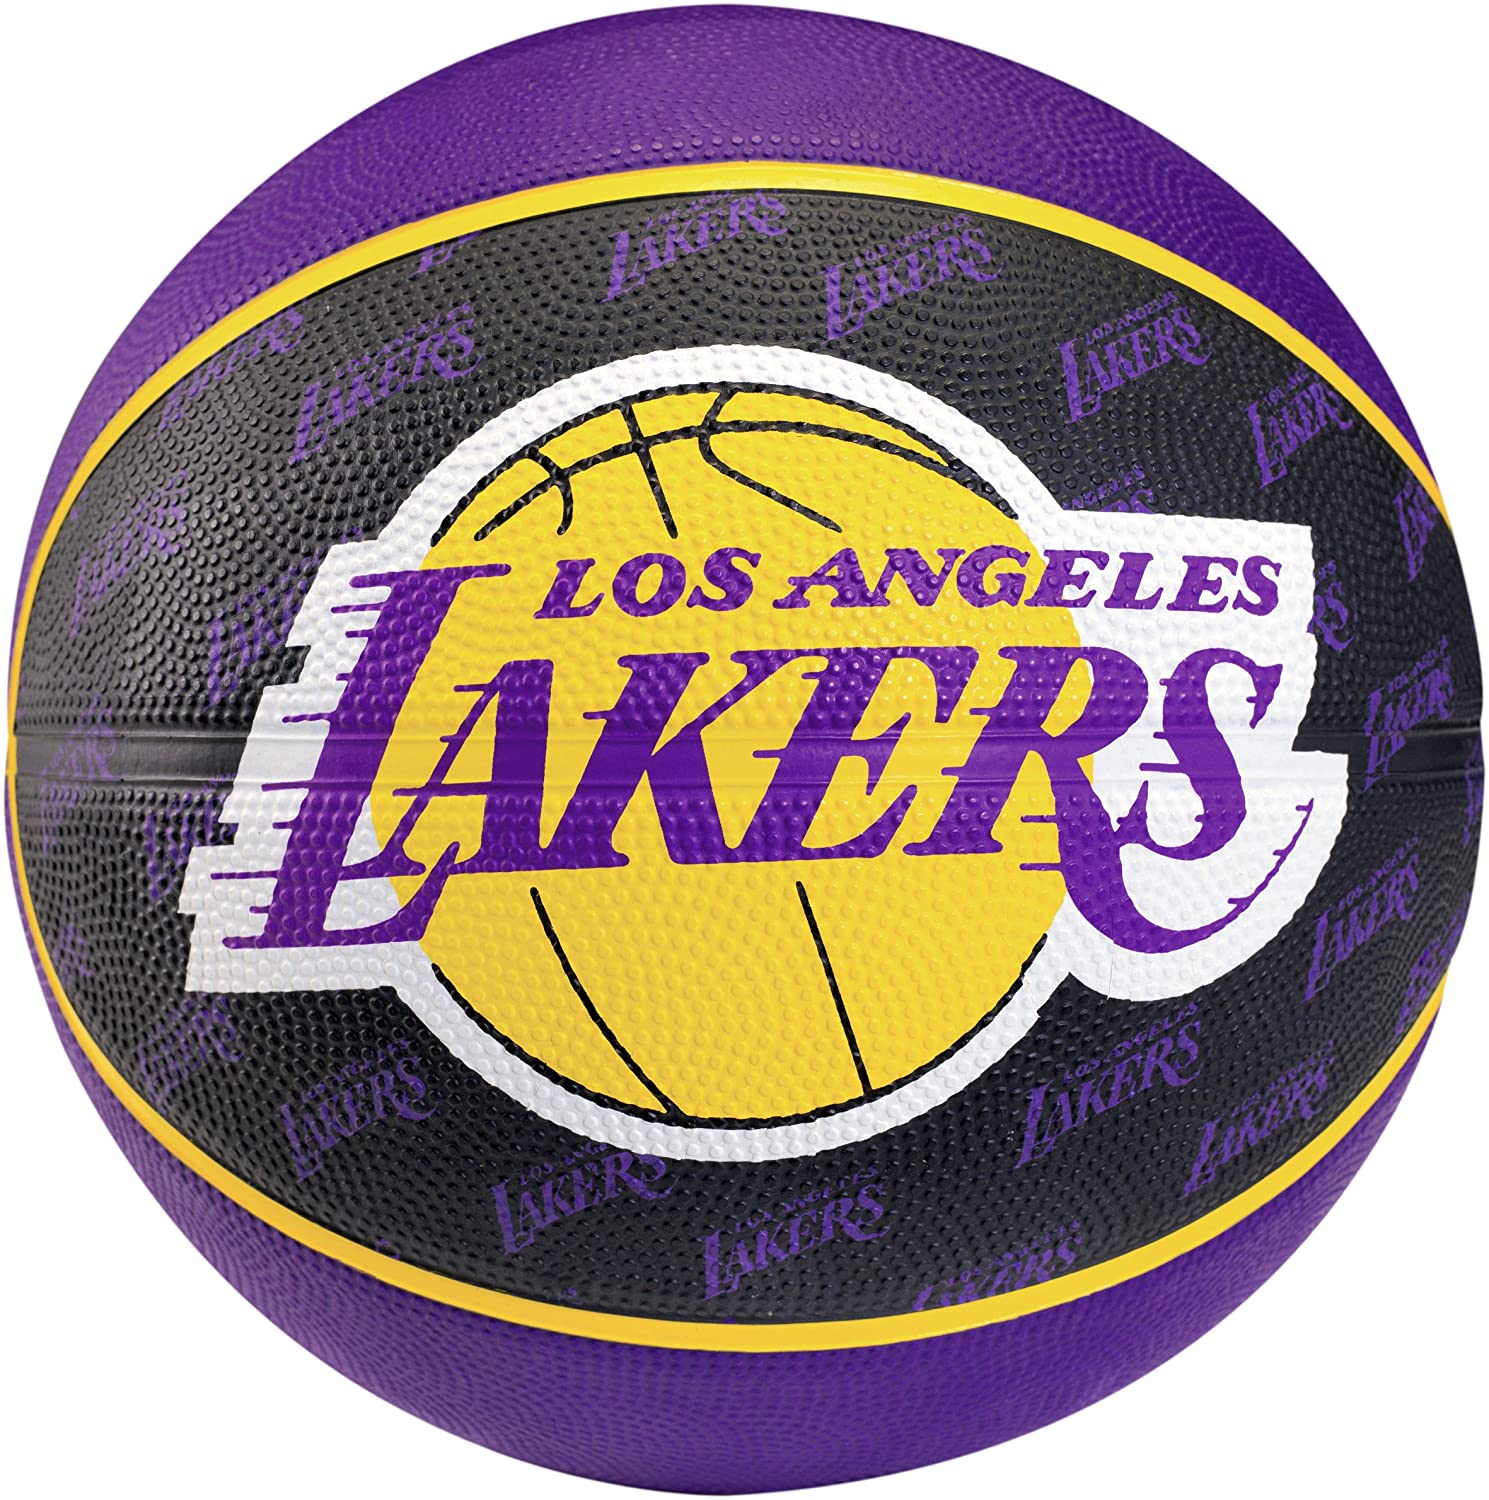 Spalding Team Ball L.a. Lakers, (73-944z) - Pelota de Baloncesto ...